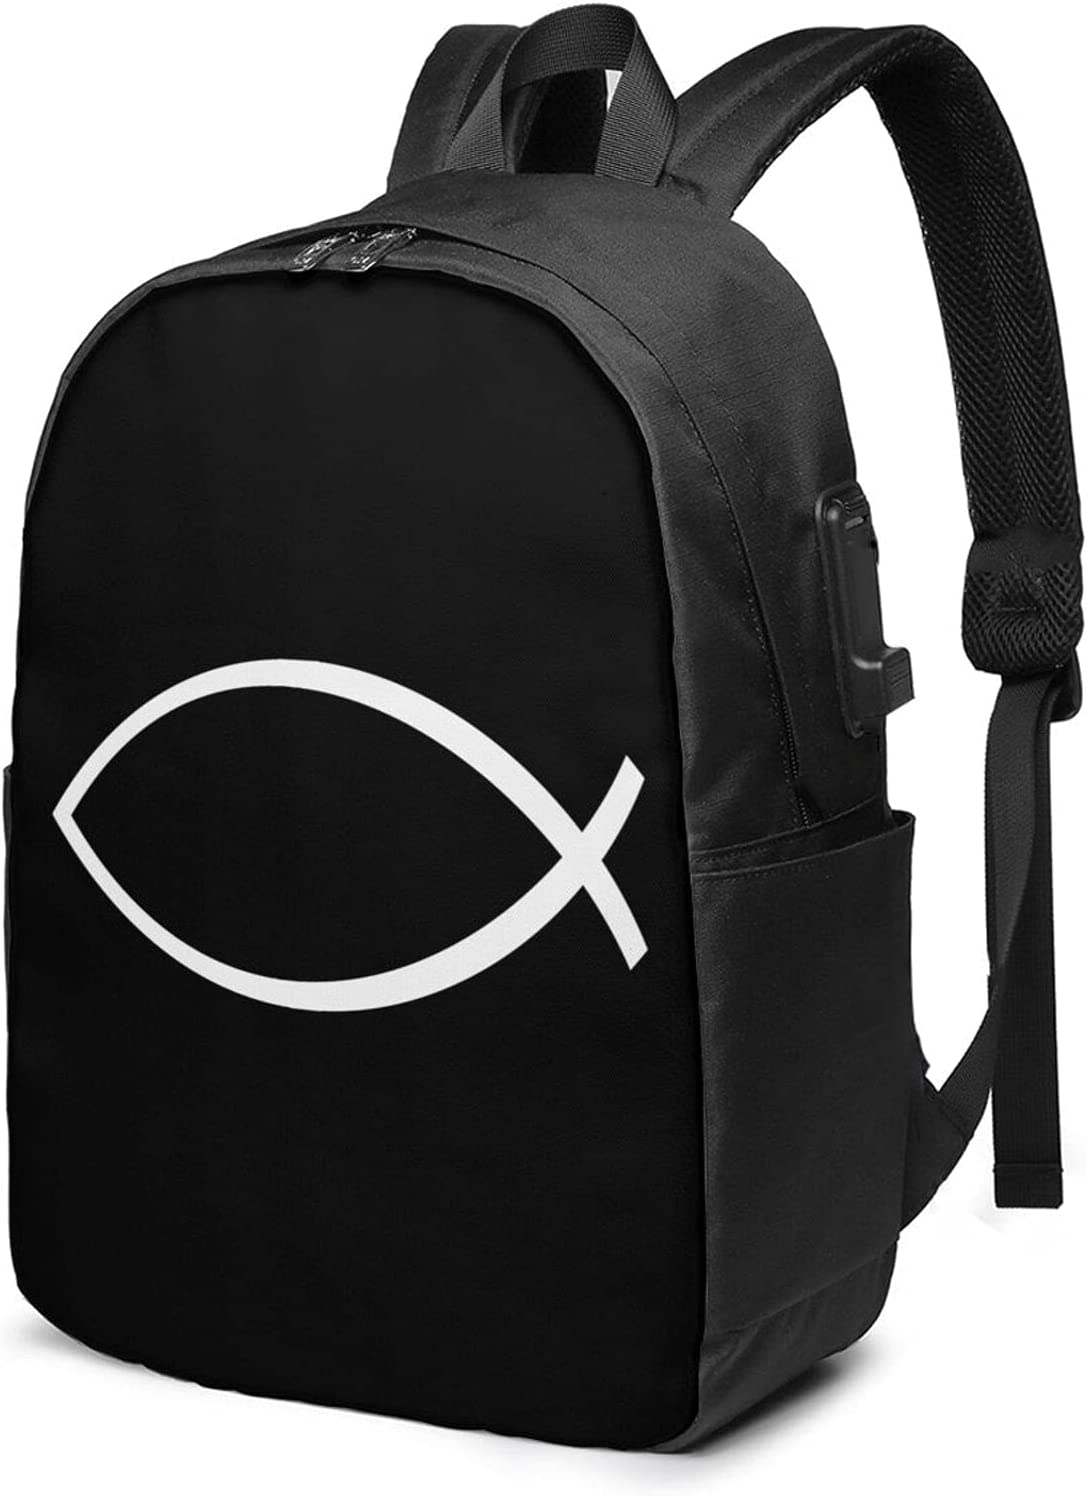 Ichthys Jesus Fish All items free shipping In a popularity Laptop Backpack With 17 Usb Inc Charging Port